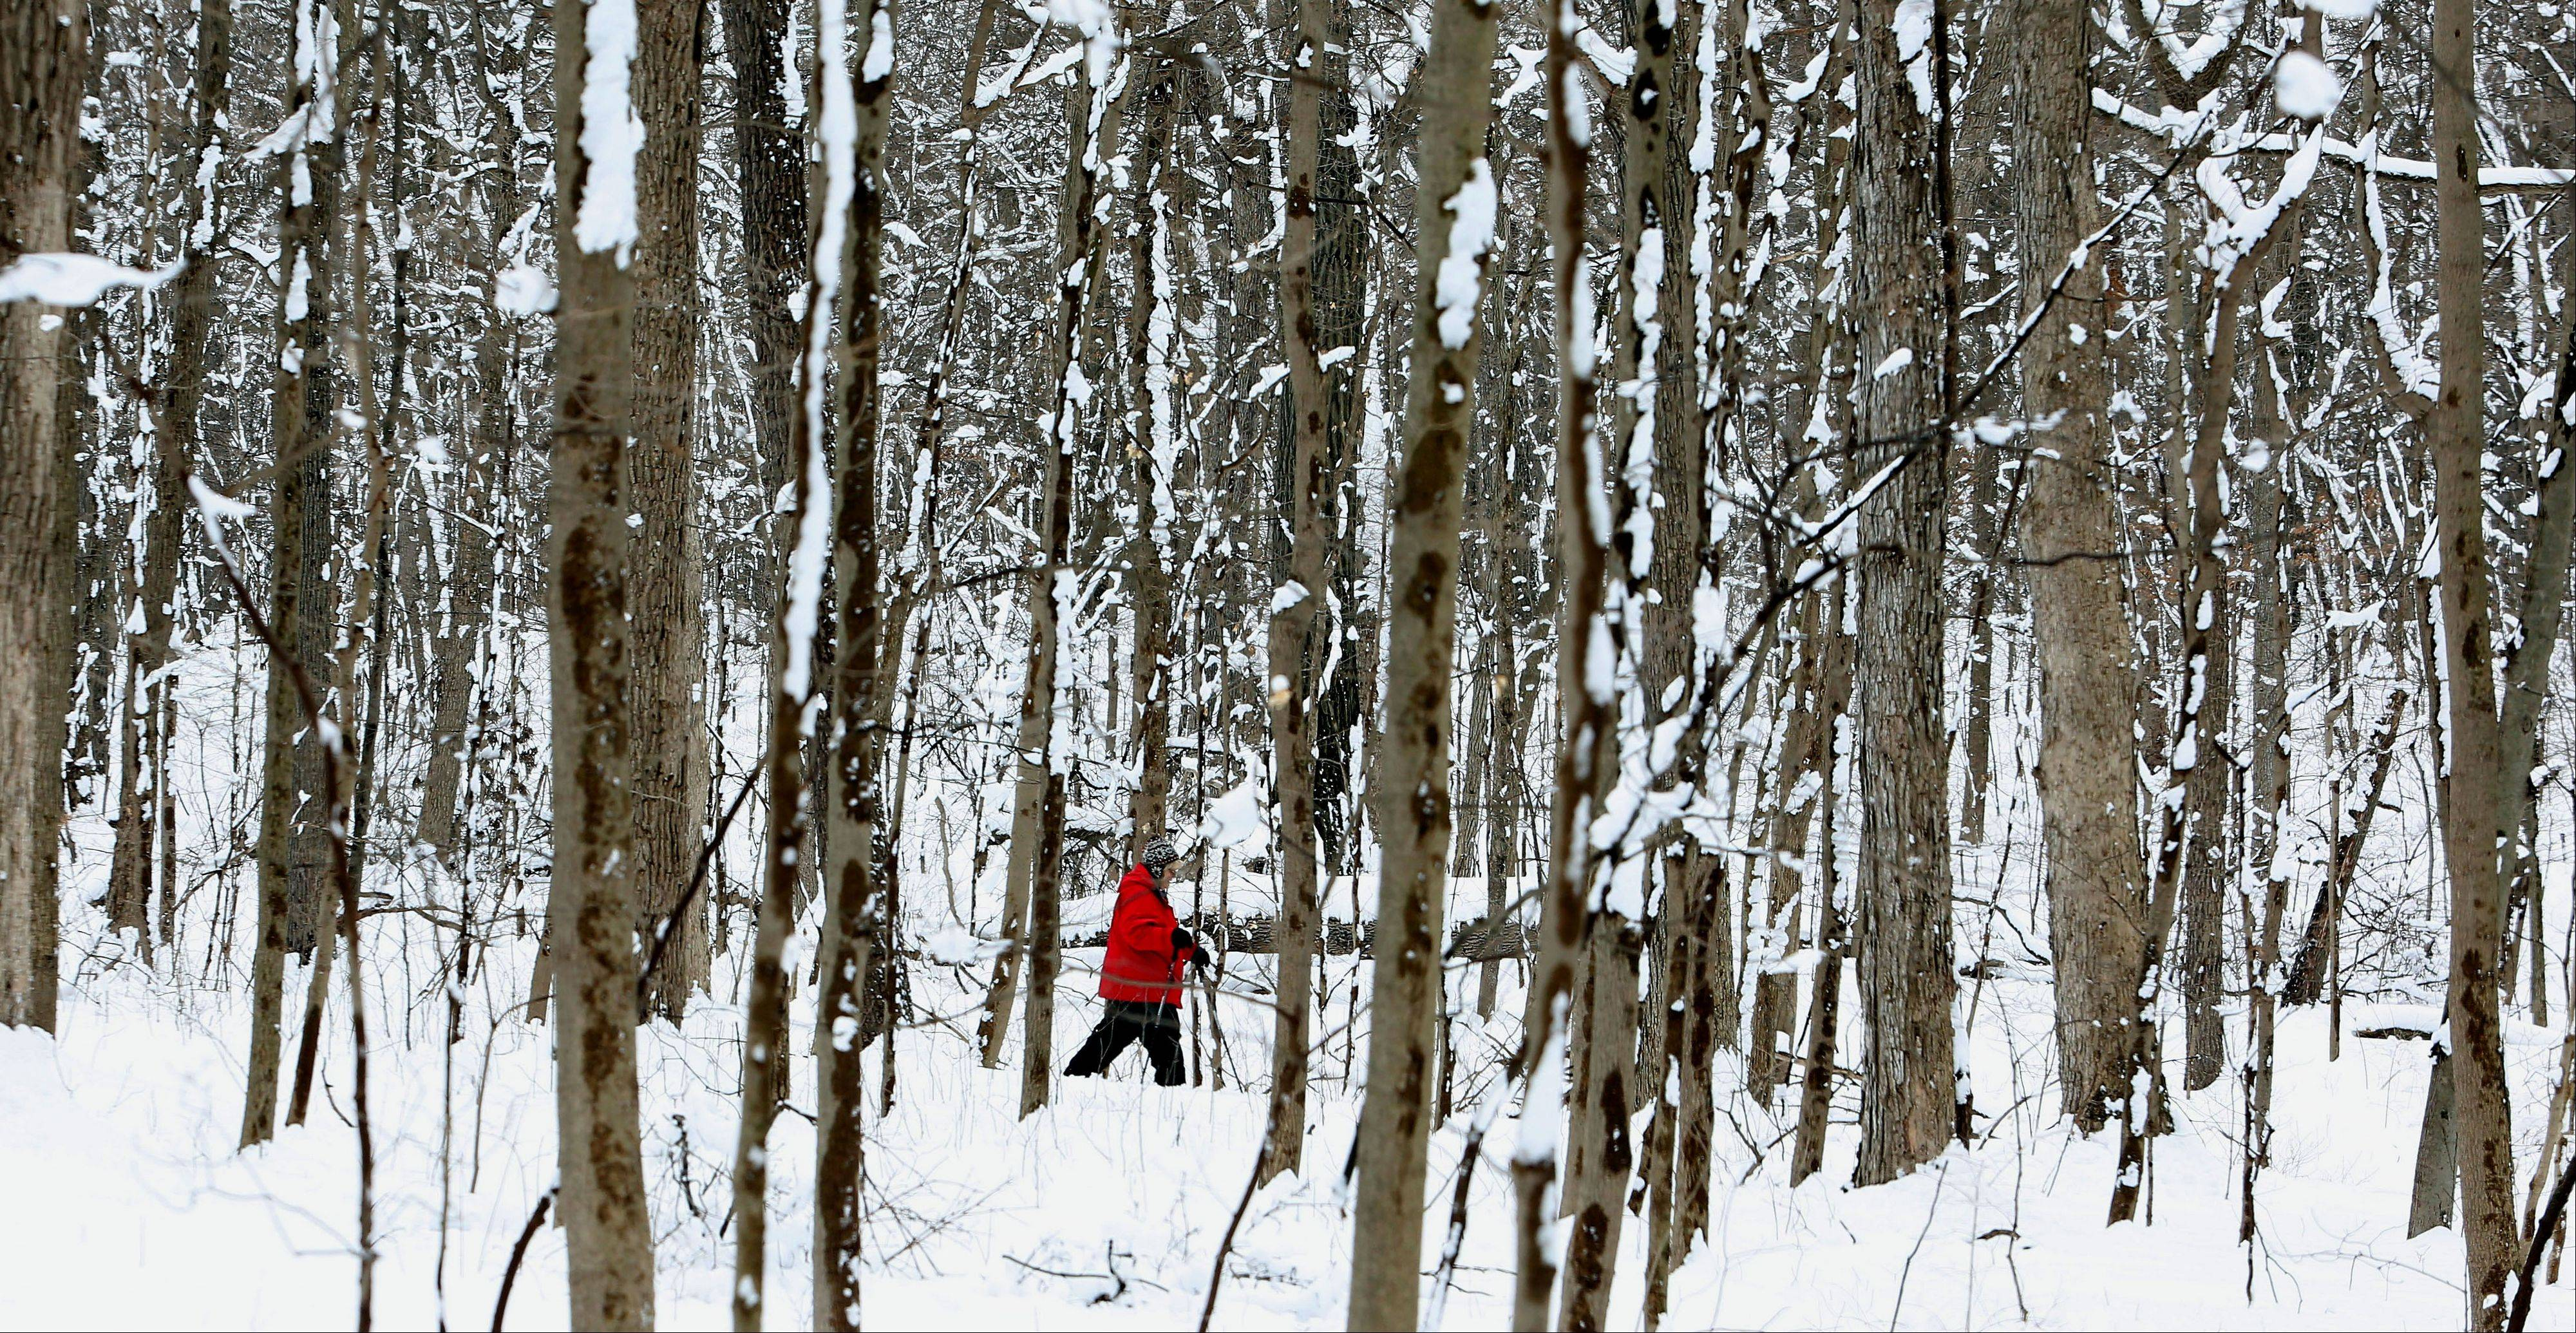 A woman in her red coat walking through the snow-covered trees in Morton Arboretum in Lisle recently caught my eye. The trees were beautiful by themselves, but a spot of color through them make the photo a little more interesting.